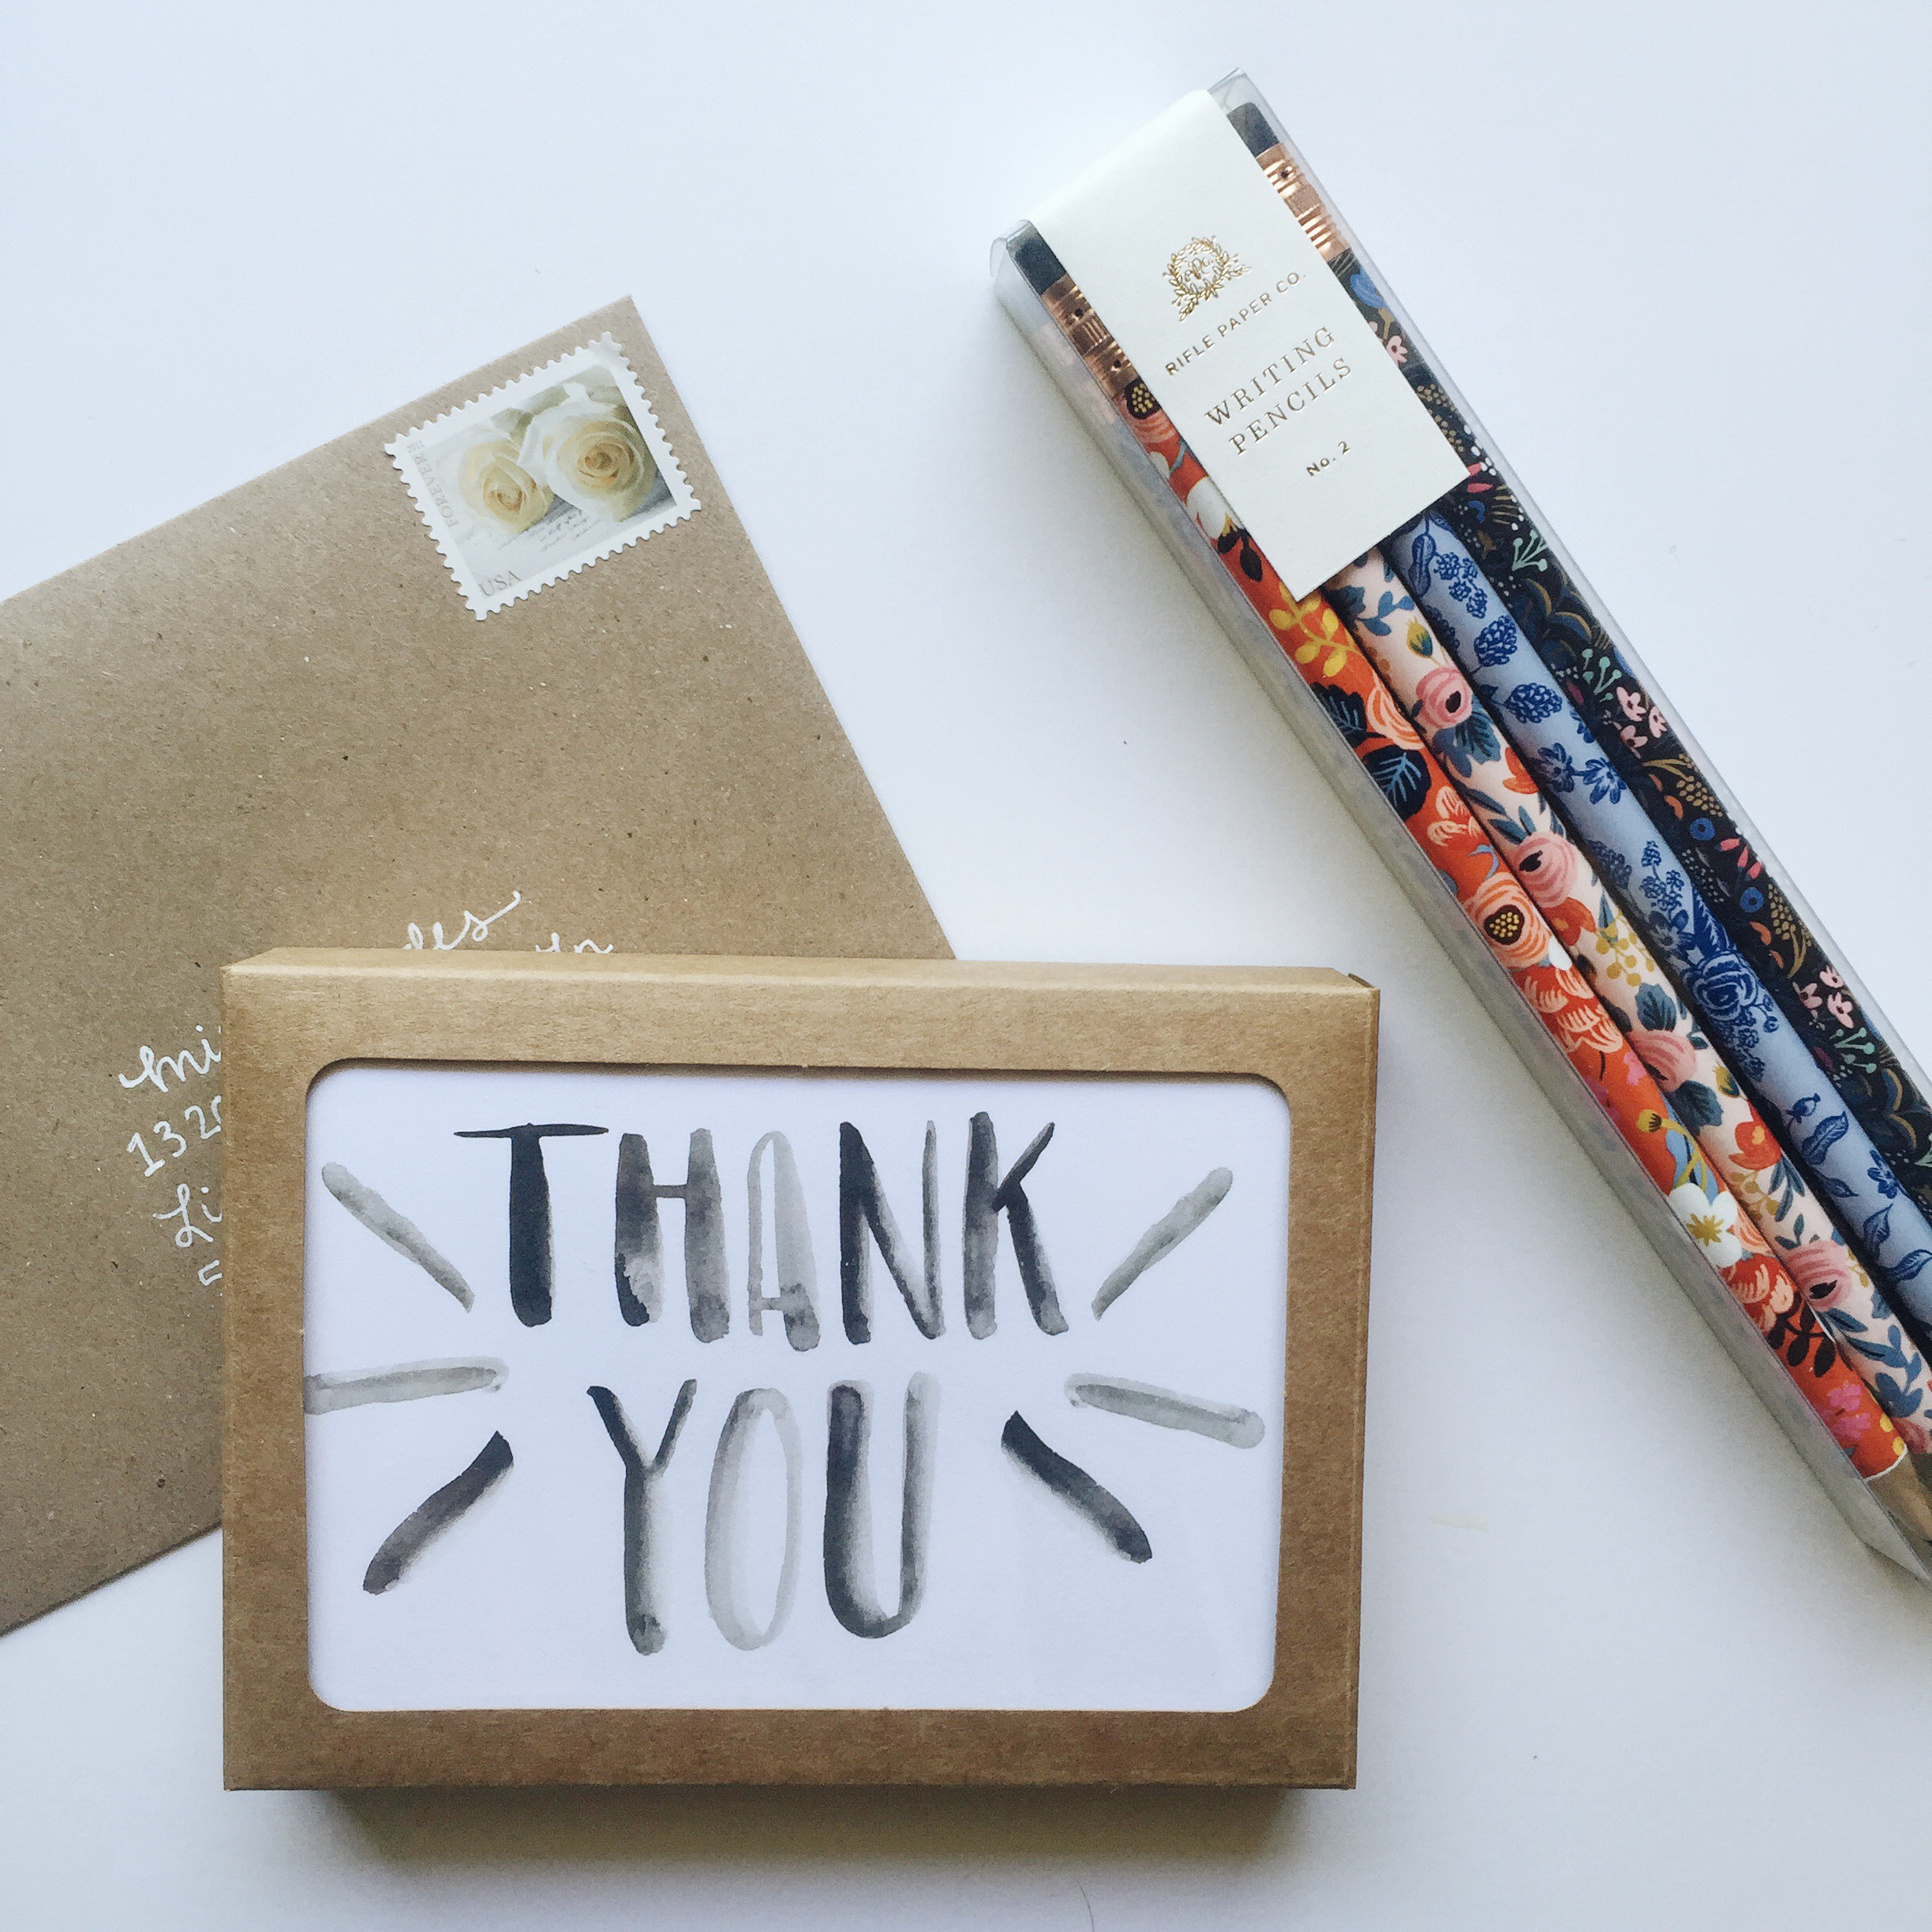 Stationery, stamps and cute writing supplies is a fun gift to encourage snail mail!